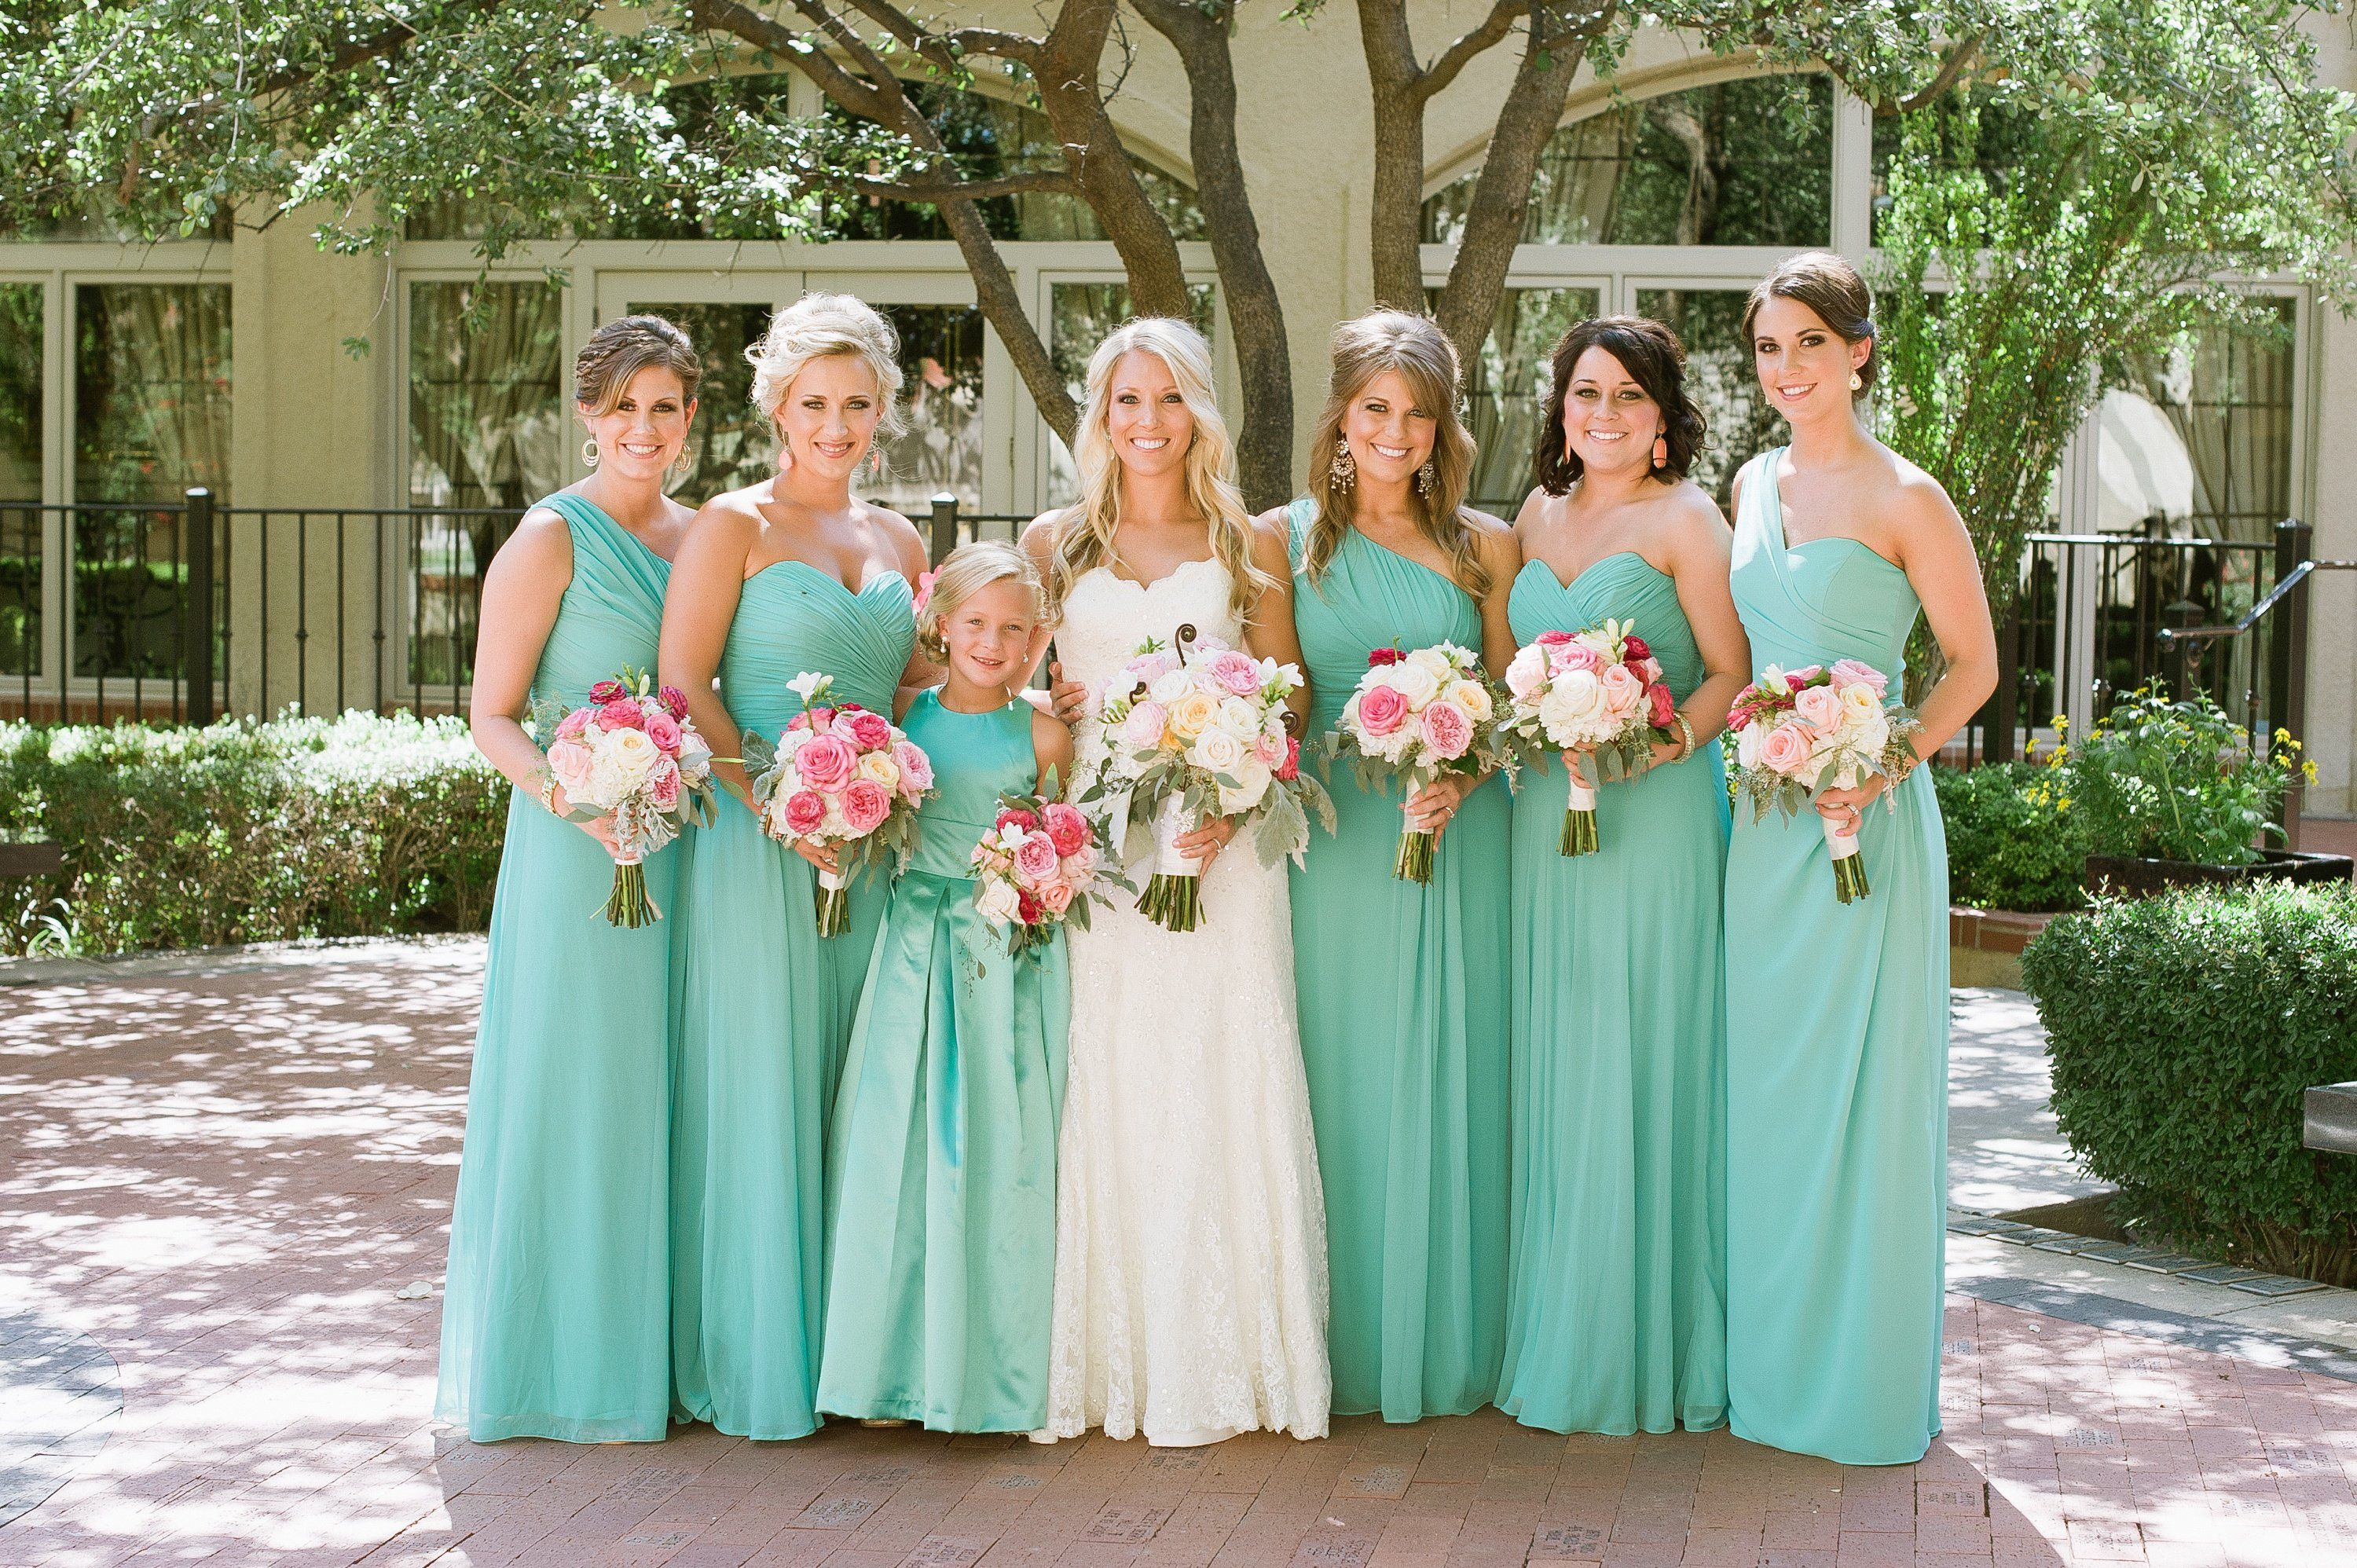 A Texas Tech University Wedding in Lubbock, Texas featured on ...